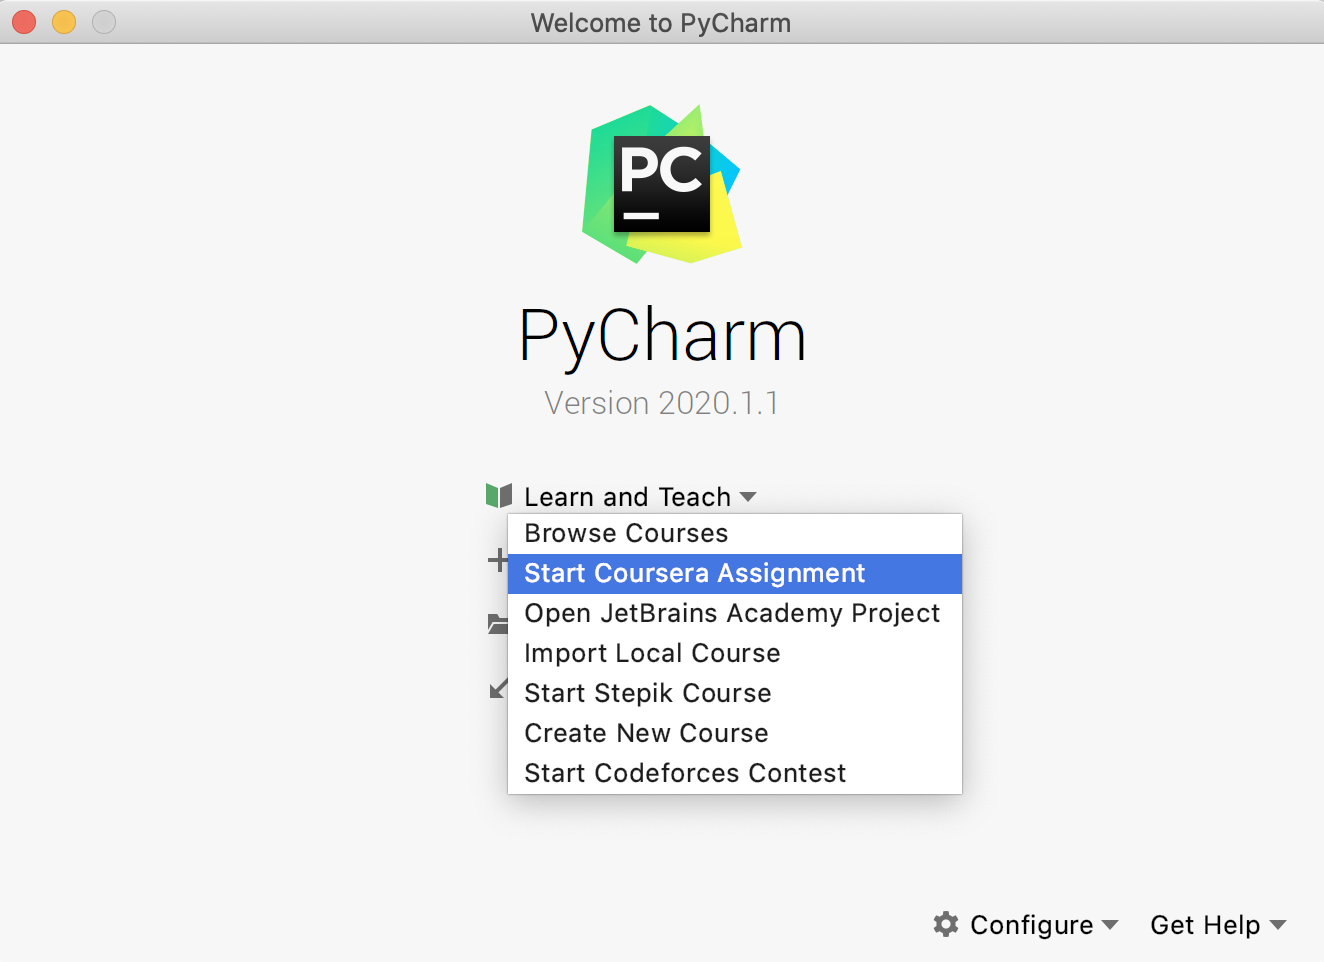 Coursera assignments in PyCharm